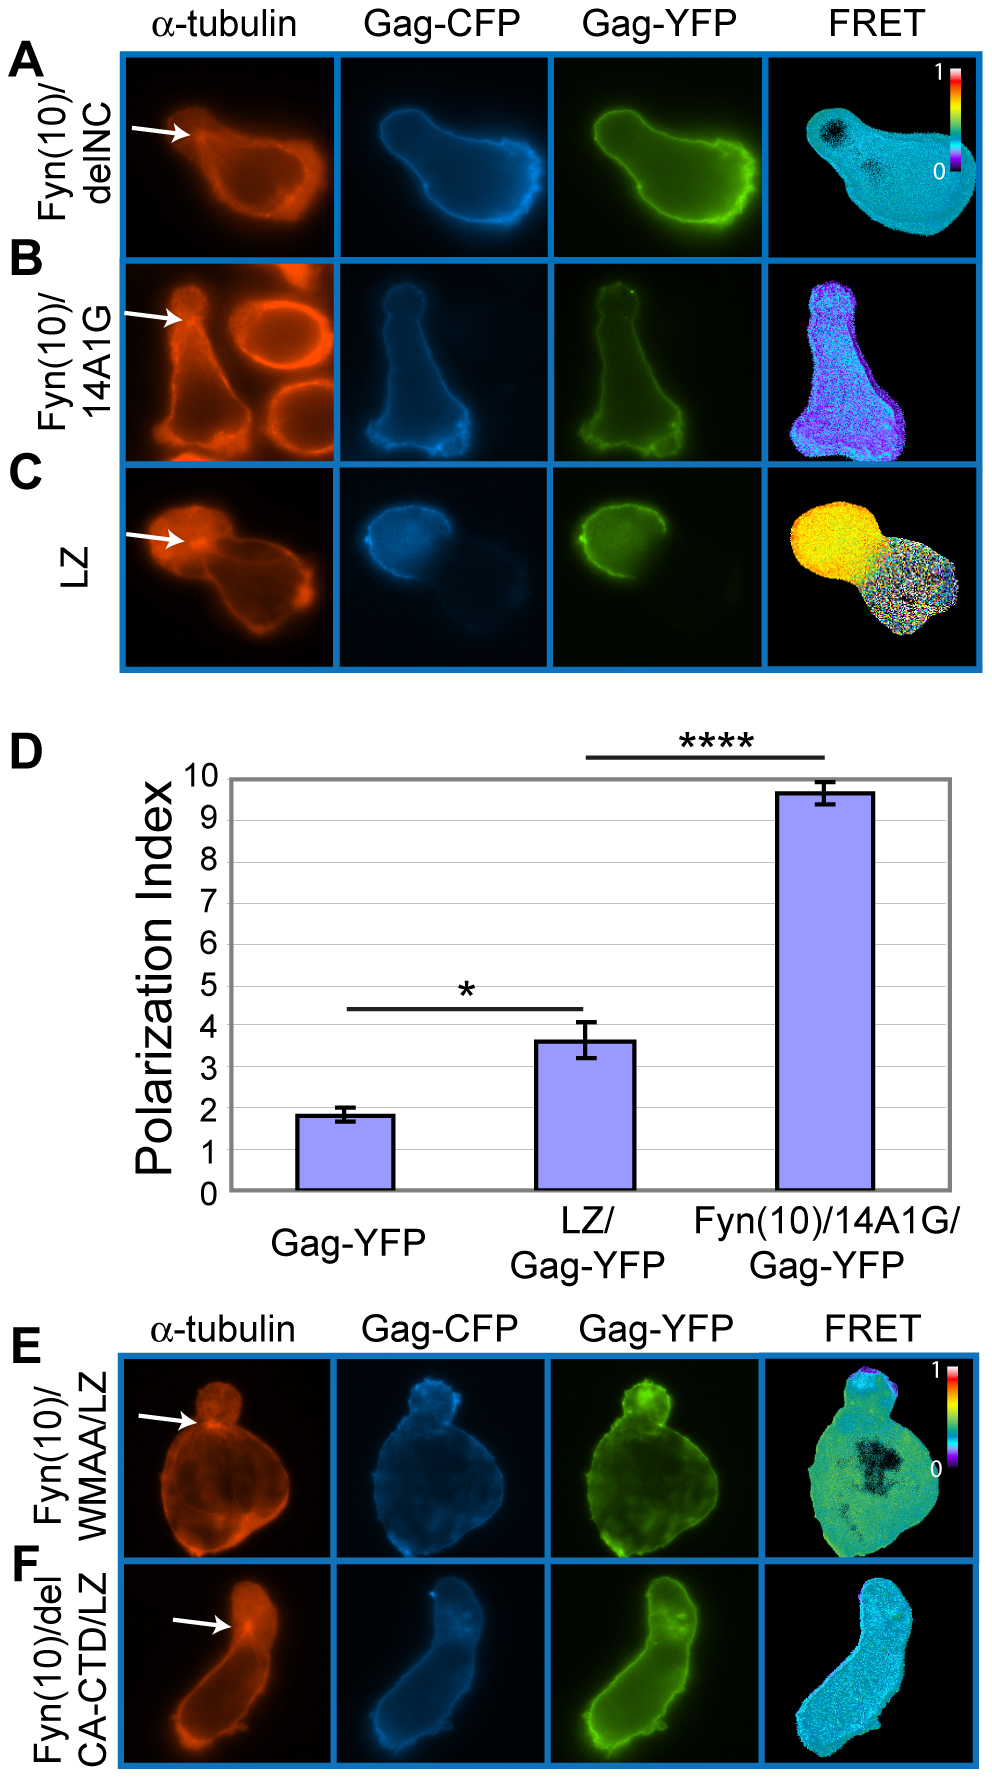 Higher-order multimerization mediated by NC is required for Gag localization to the uropod.